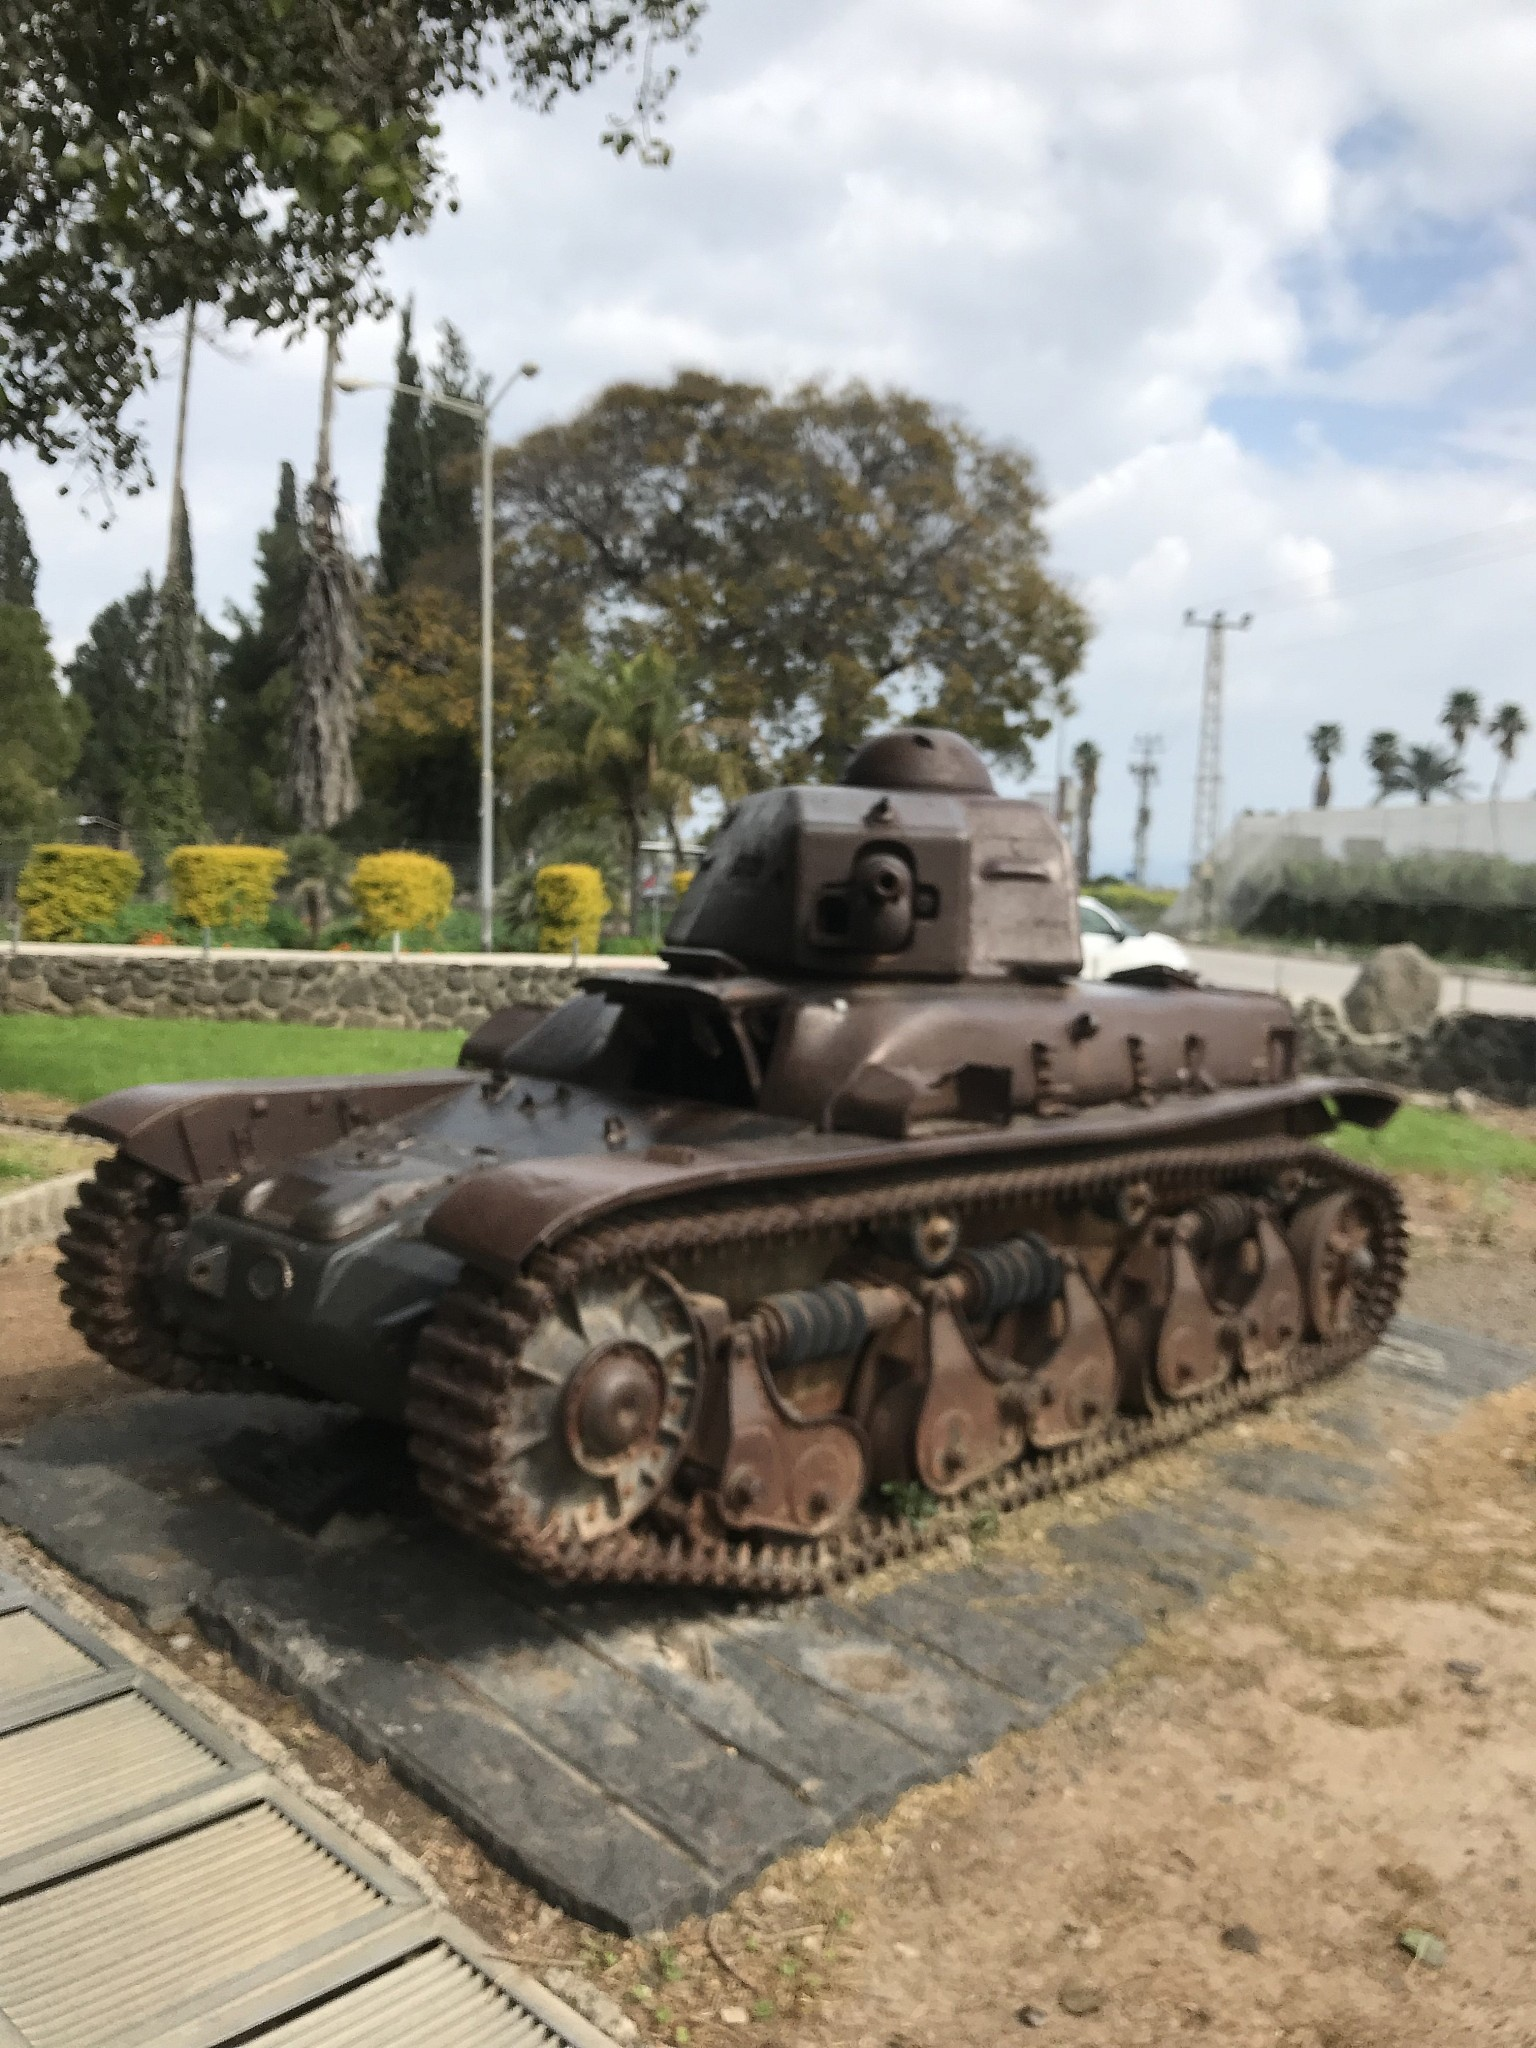 the tank at the